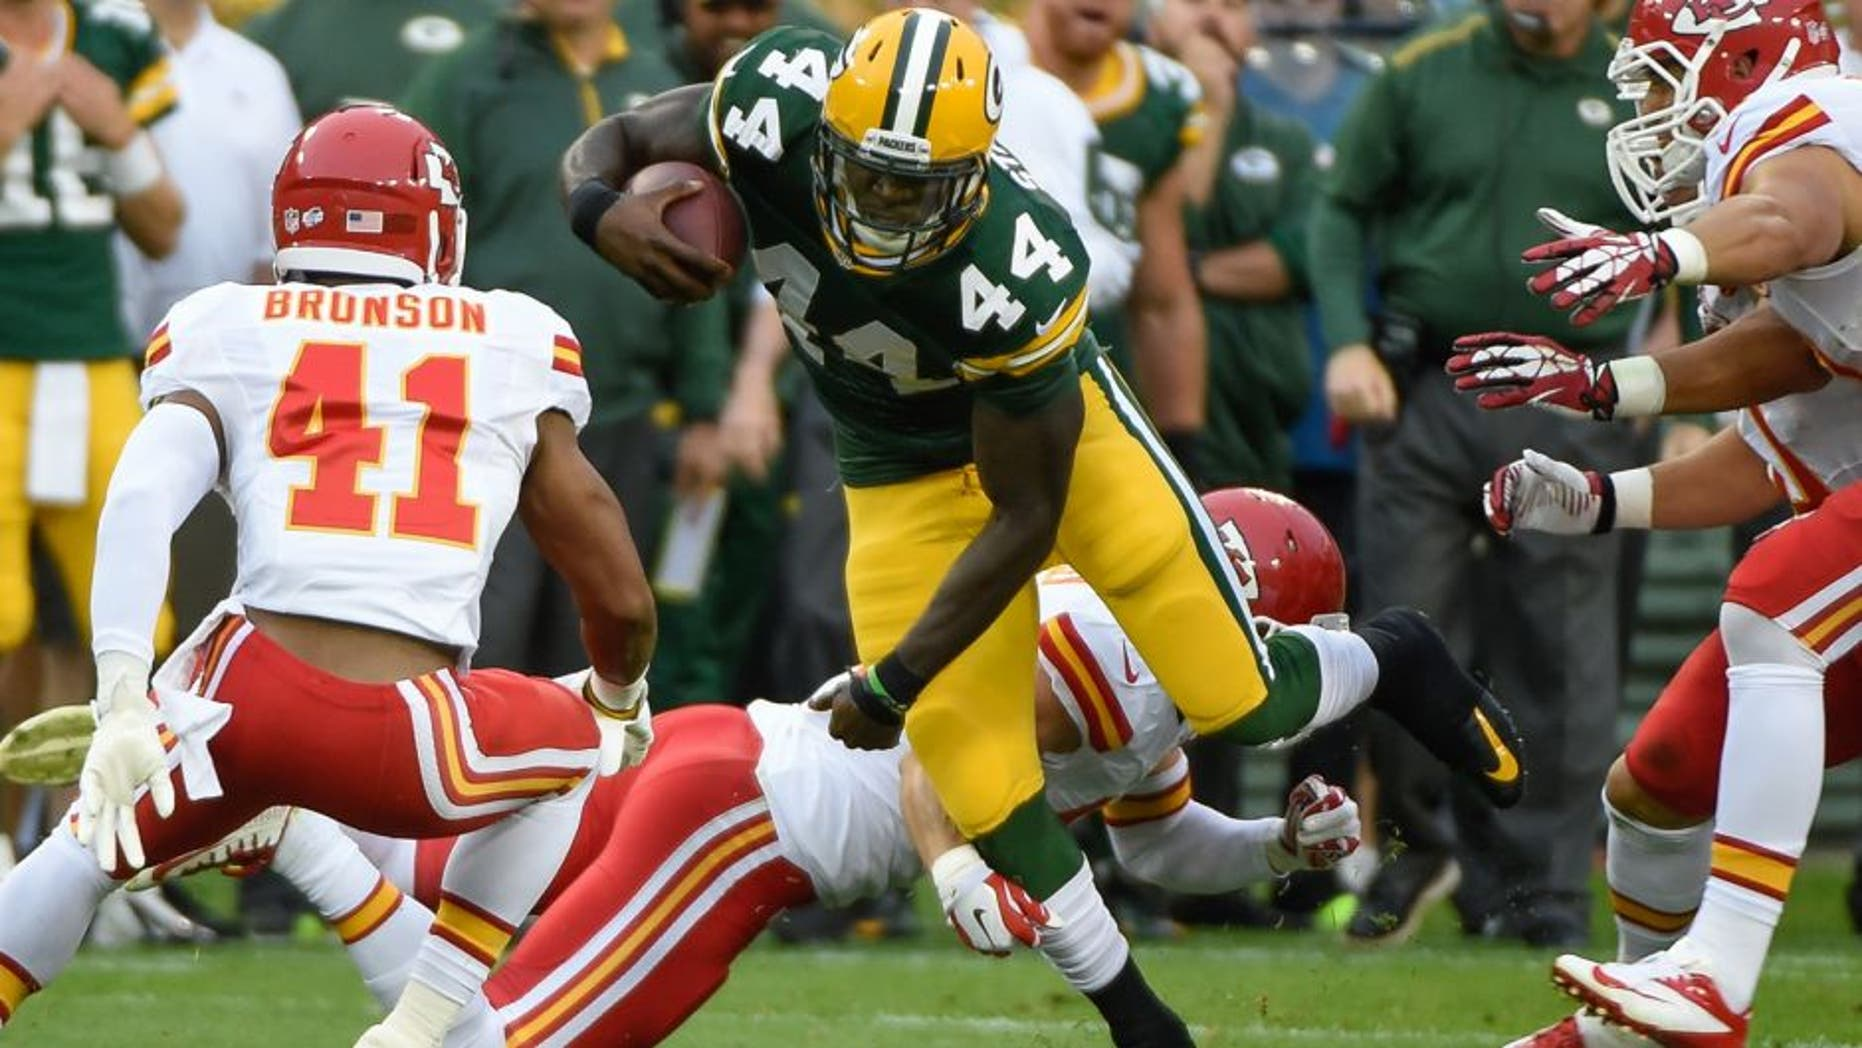 Aug 28, 2014; Green Bay, WI, USA; Green Bay Packers running back James Starks (44) runs with the ball as Kansas City Chiefs defensive back Malcolm Bronson (41) chases in the first quarter at Lambeau Field. Mandatory Credit: Benny Sieu-USA TODAY Sports